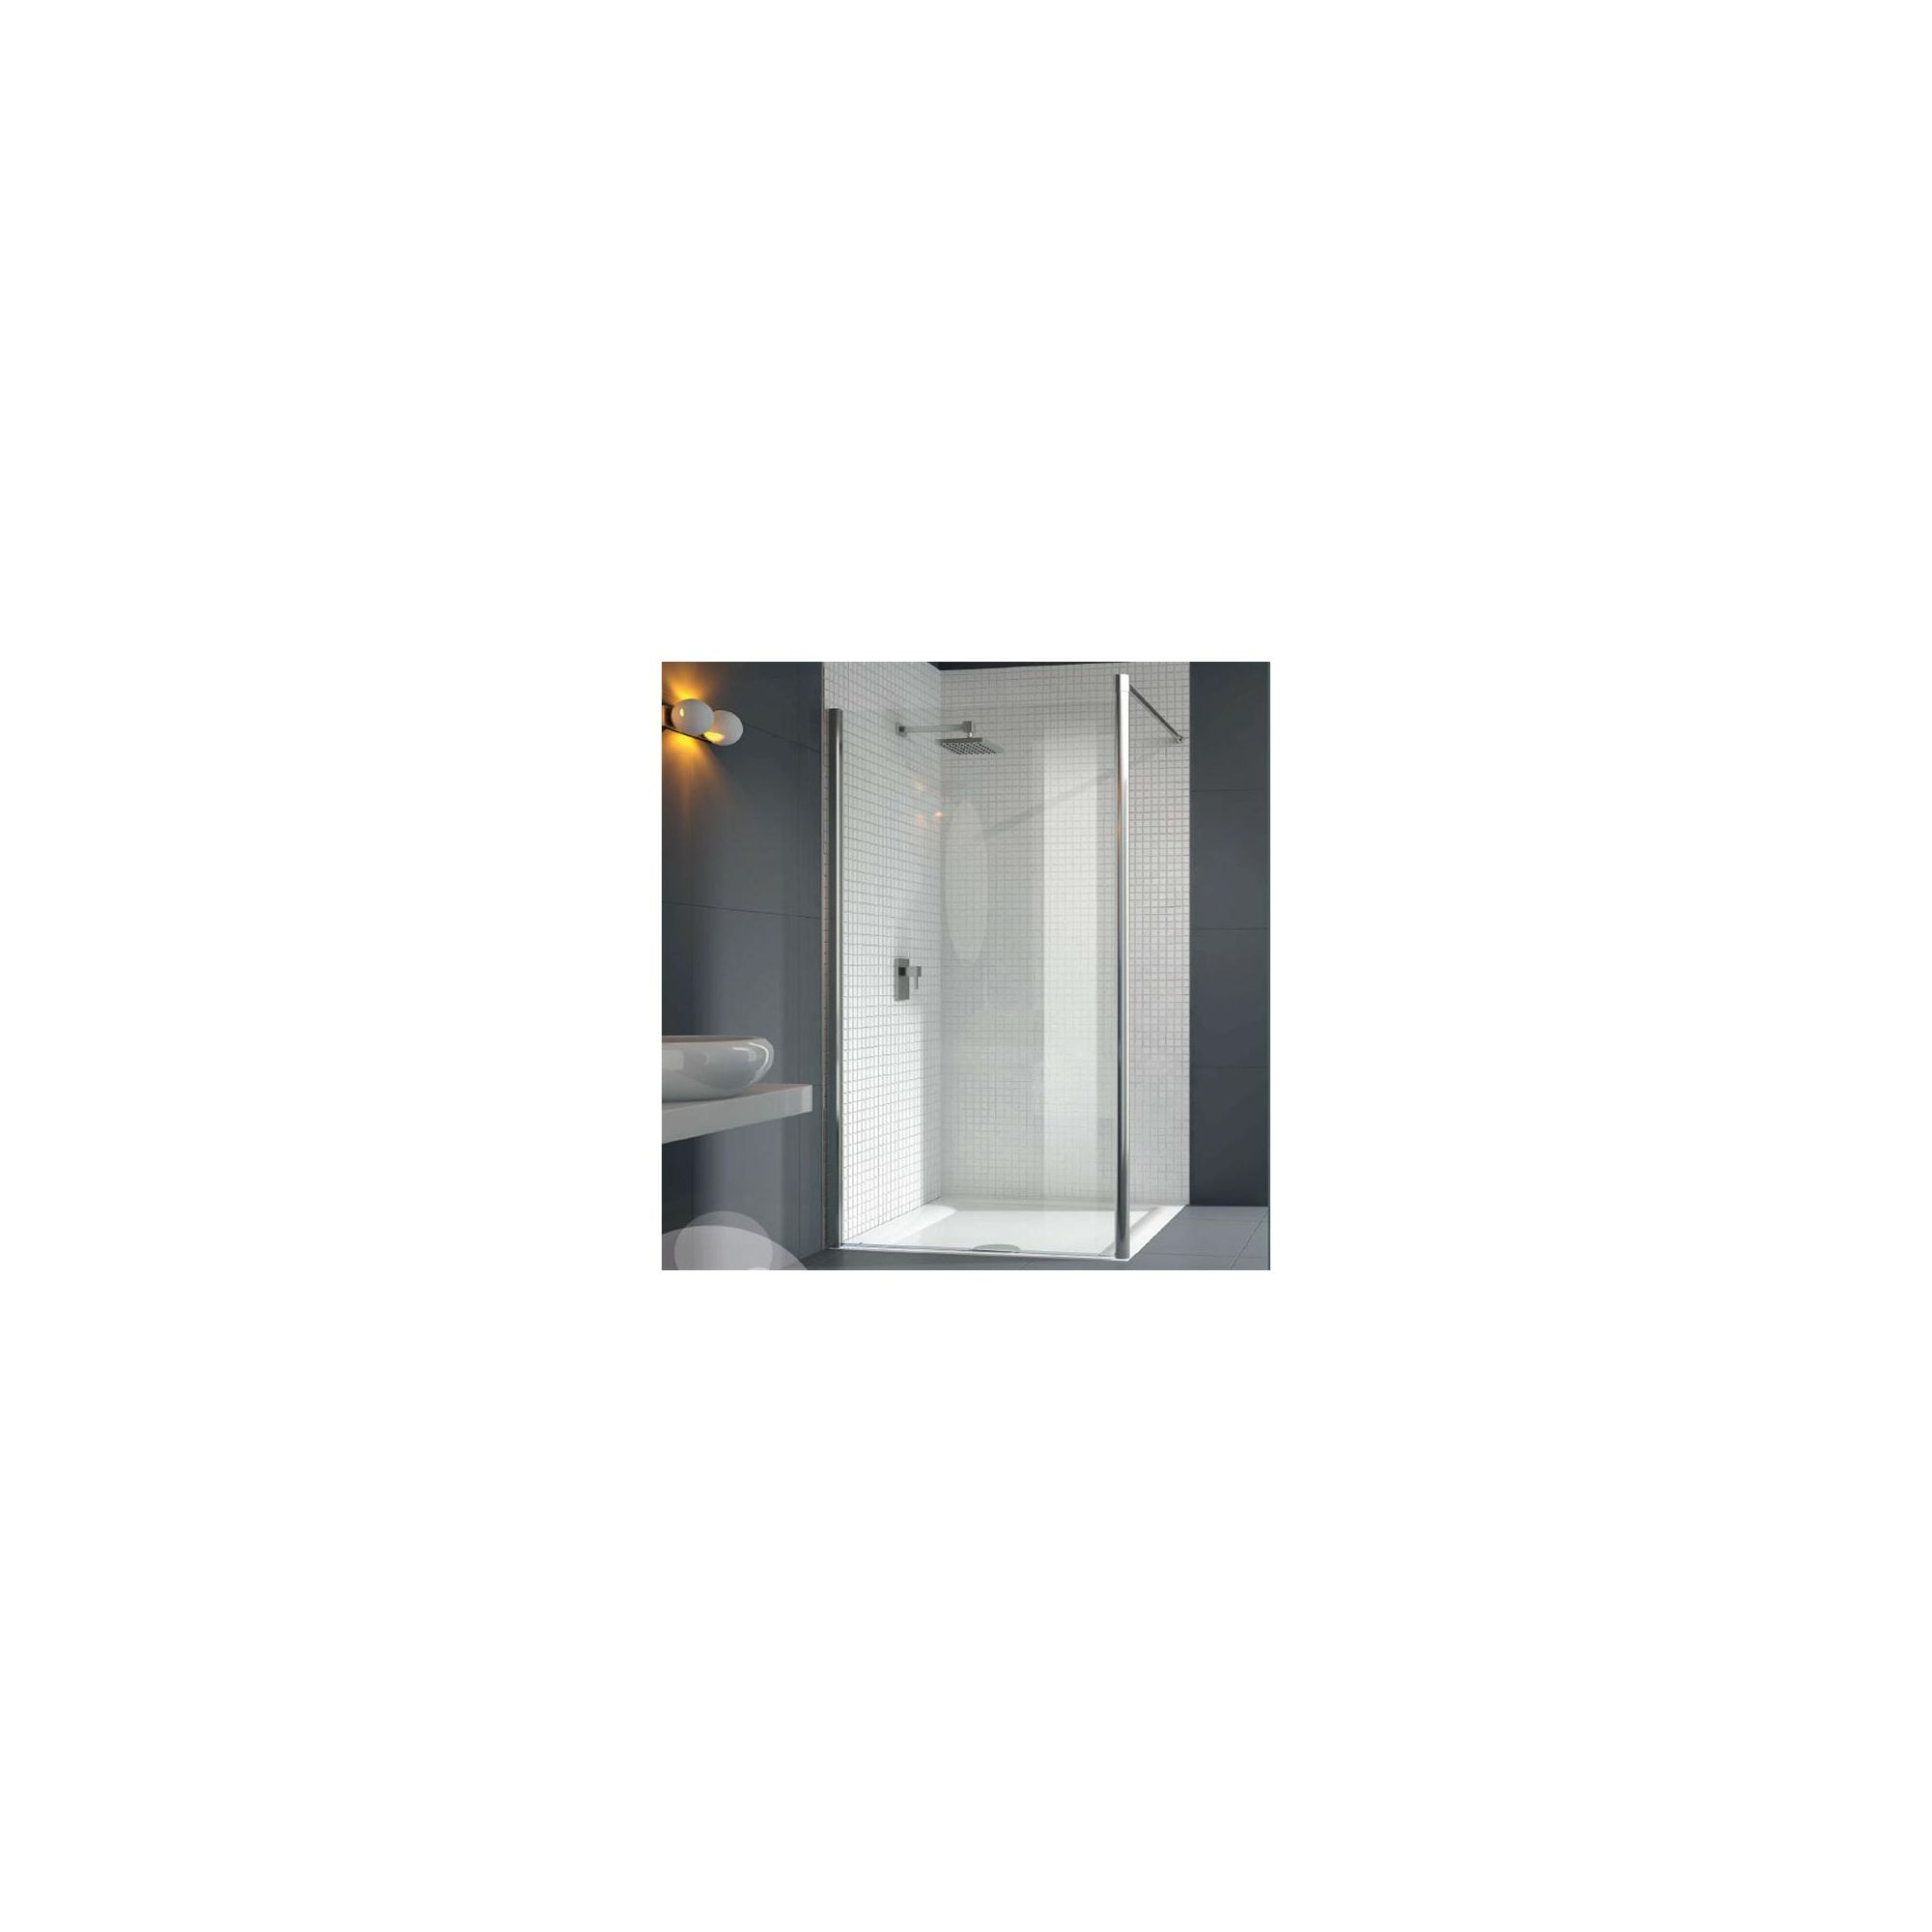 Merlyn Vivid Six Wet Room Shower Glass Panel 1000mm Wide with Horizontal Support Bar at Tesco Direct